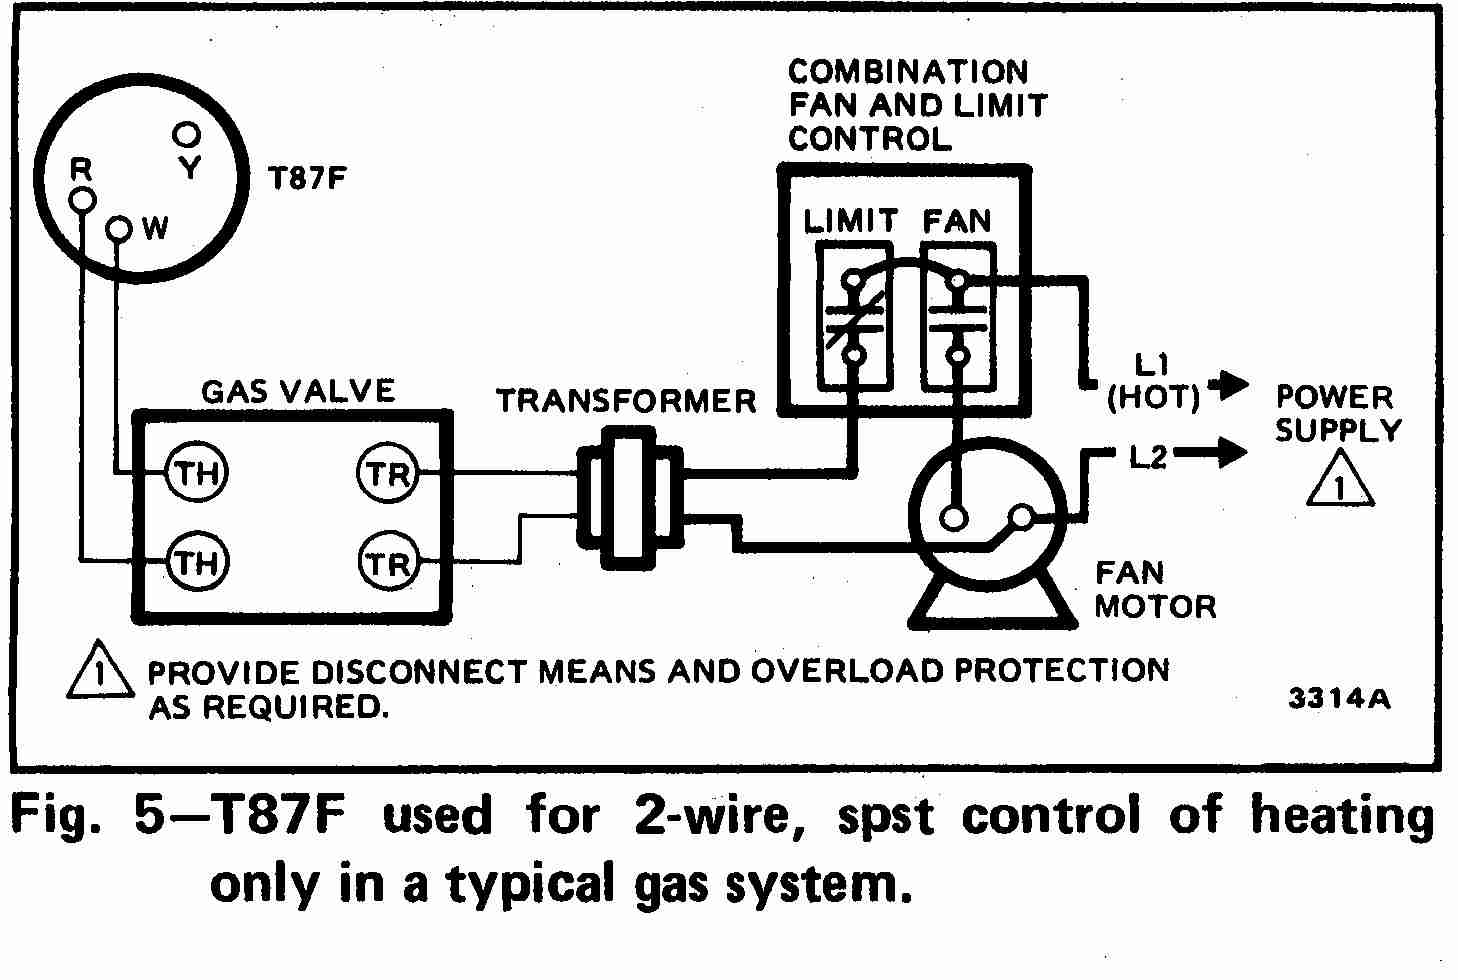 Old Furnace Wiring Diagram Old Trane Furnace Wiring Diagram - Wiring ...